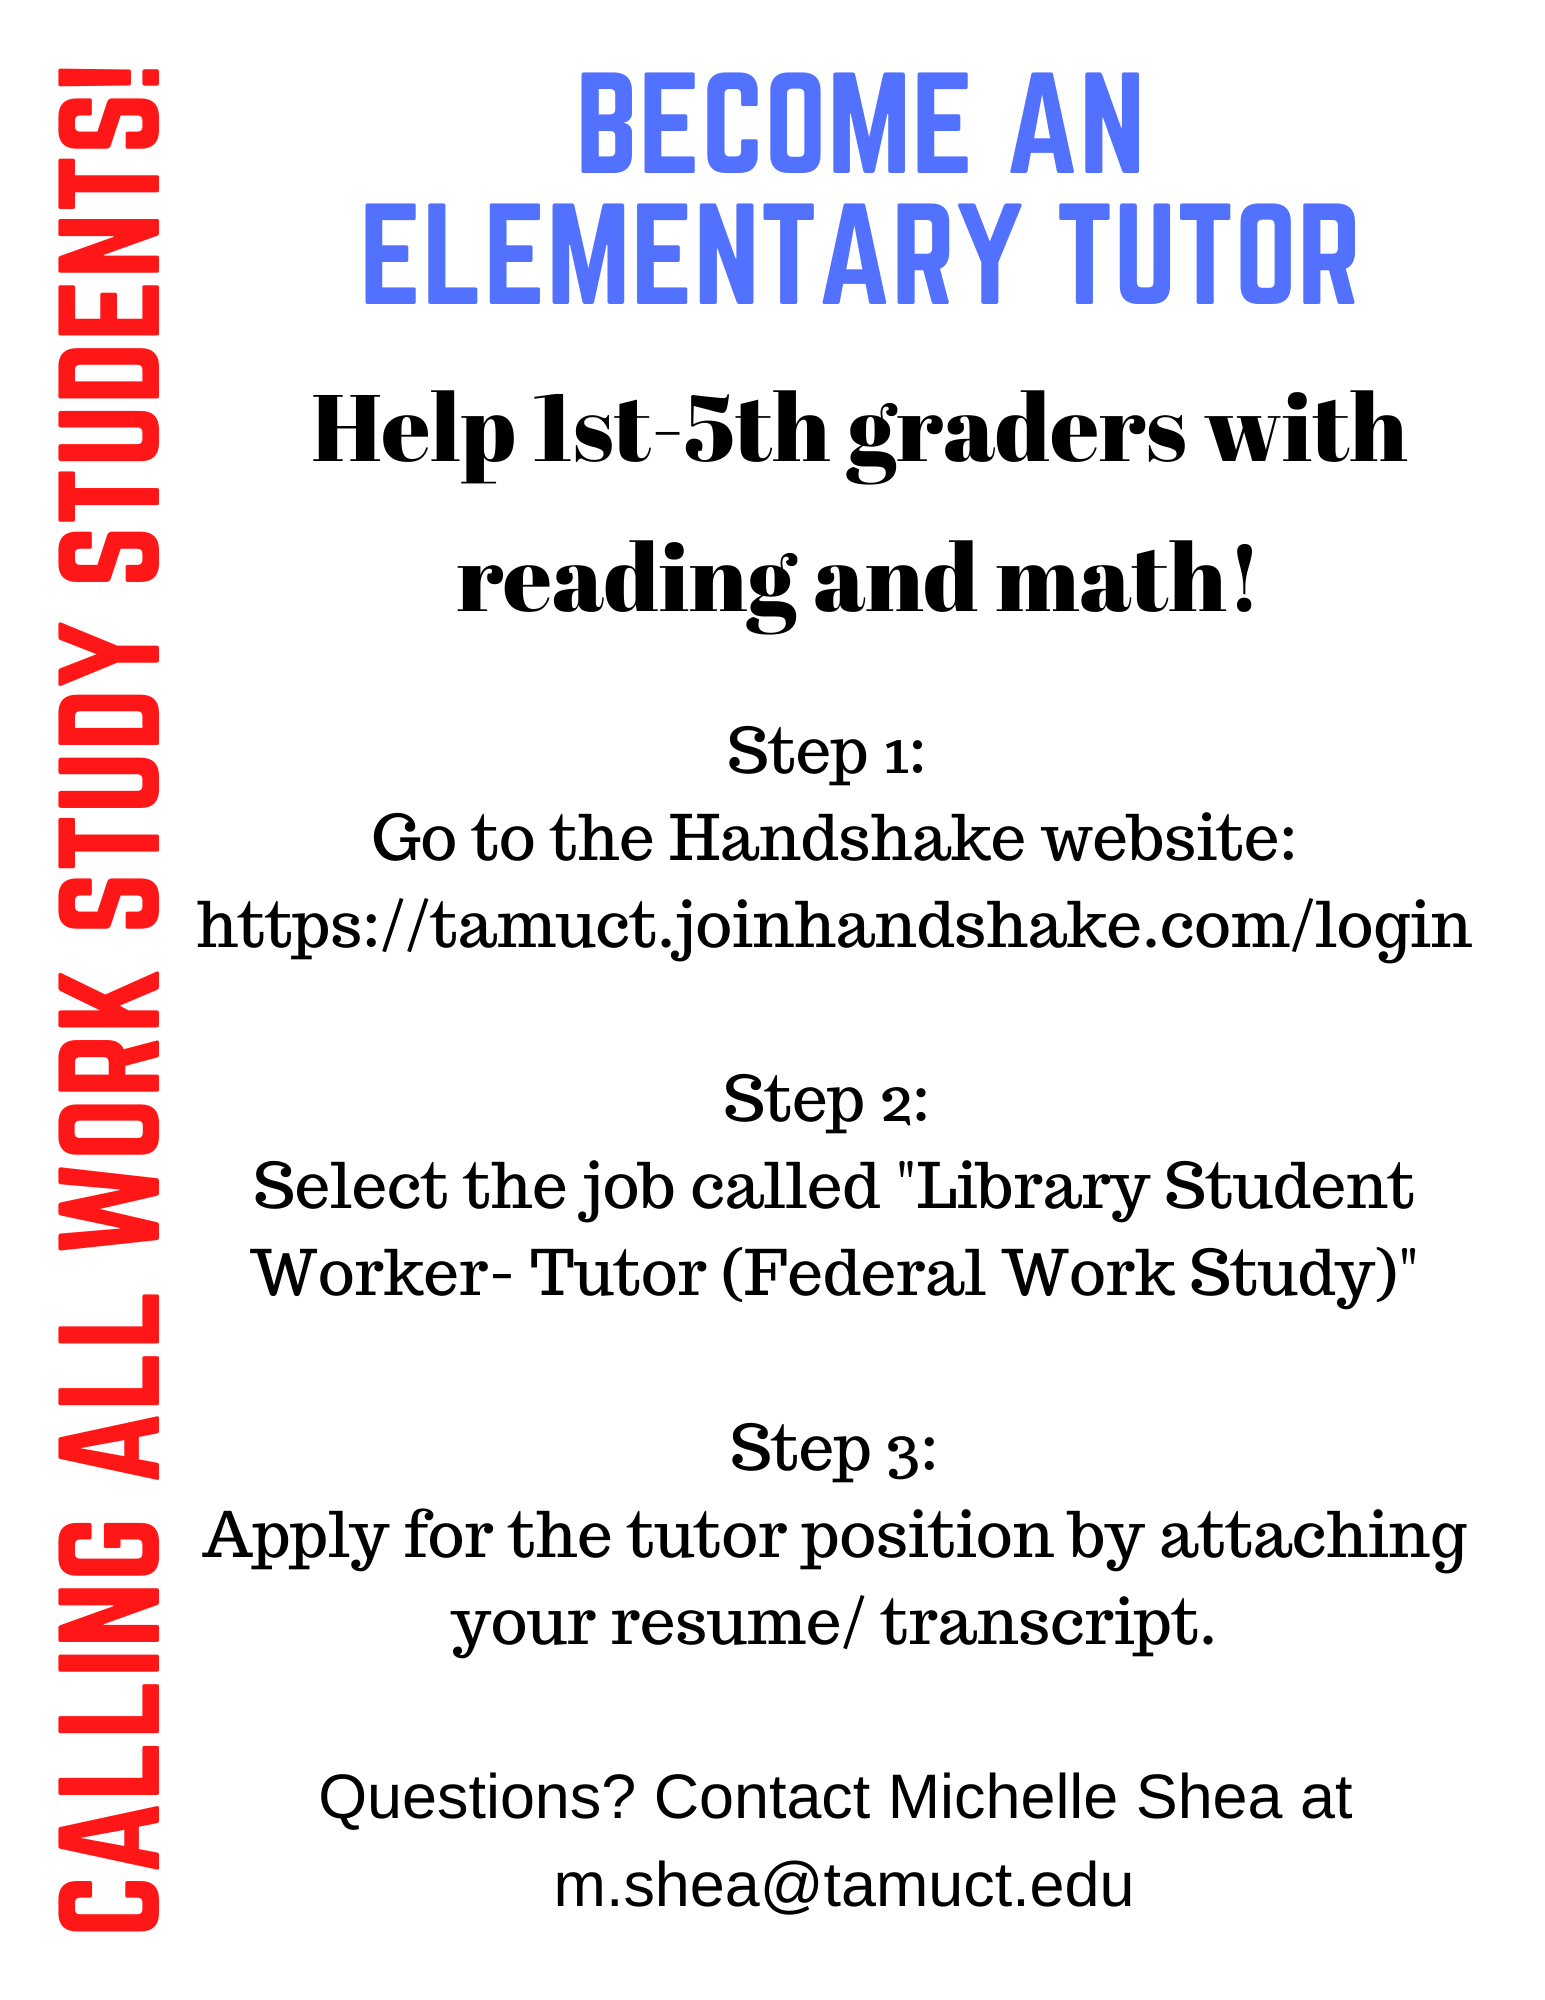 Become a Tutor Poster